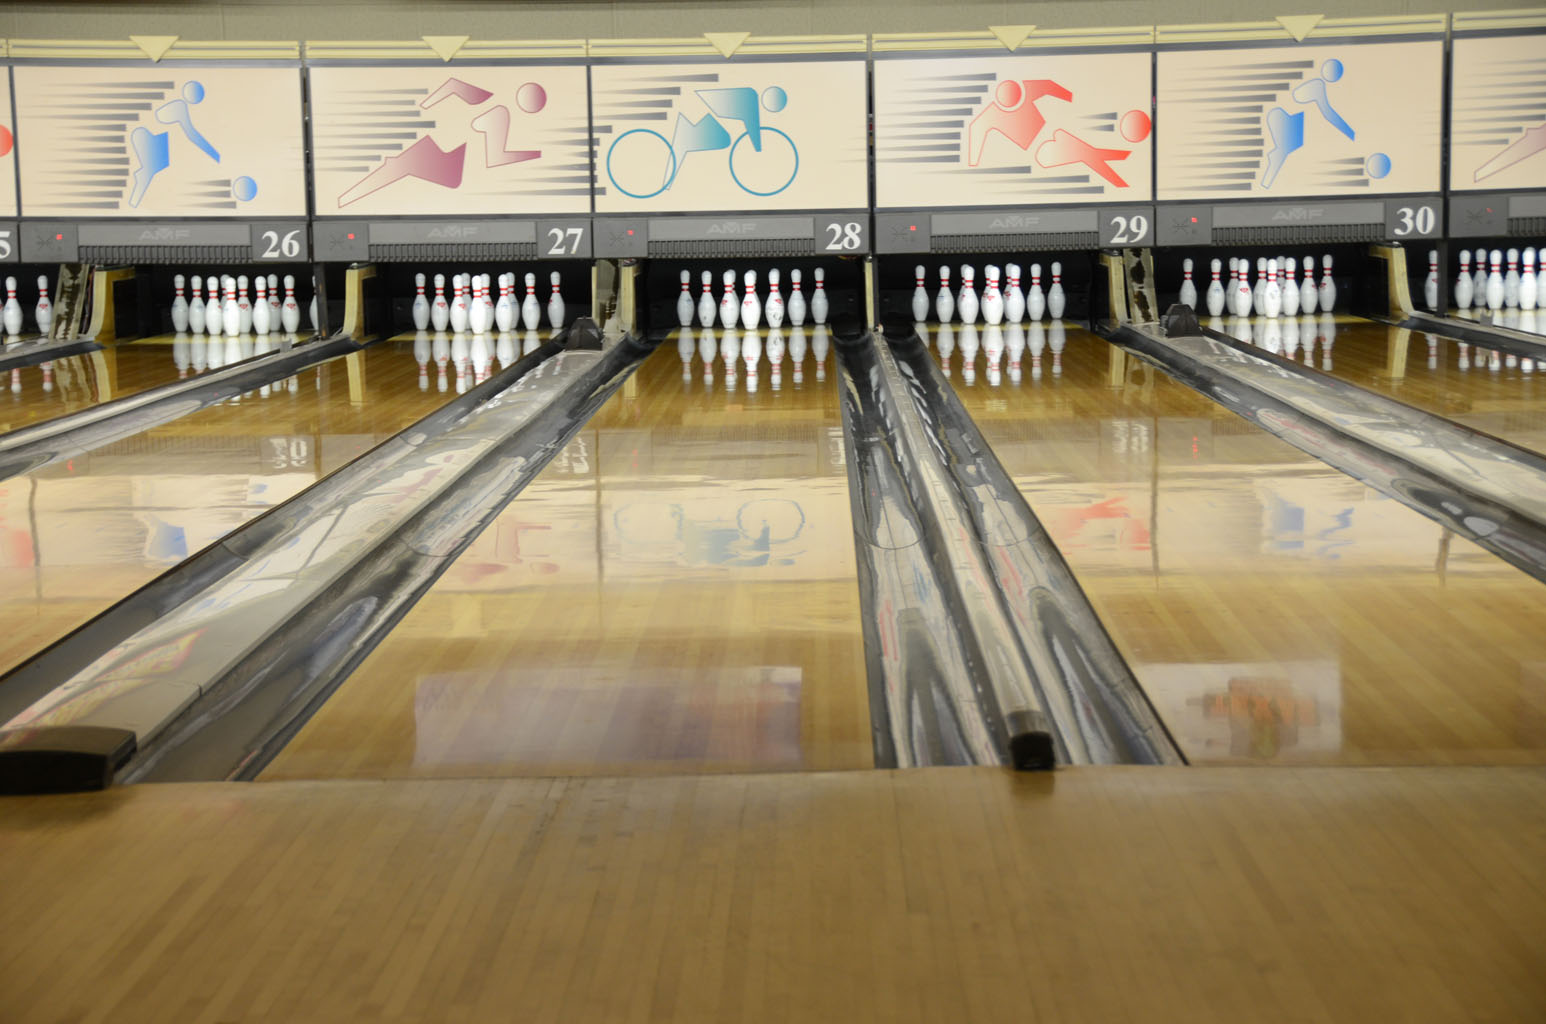 Miller_Time_Bowling_23 - croped